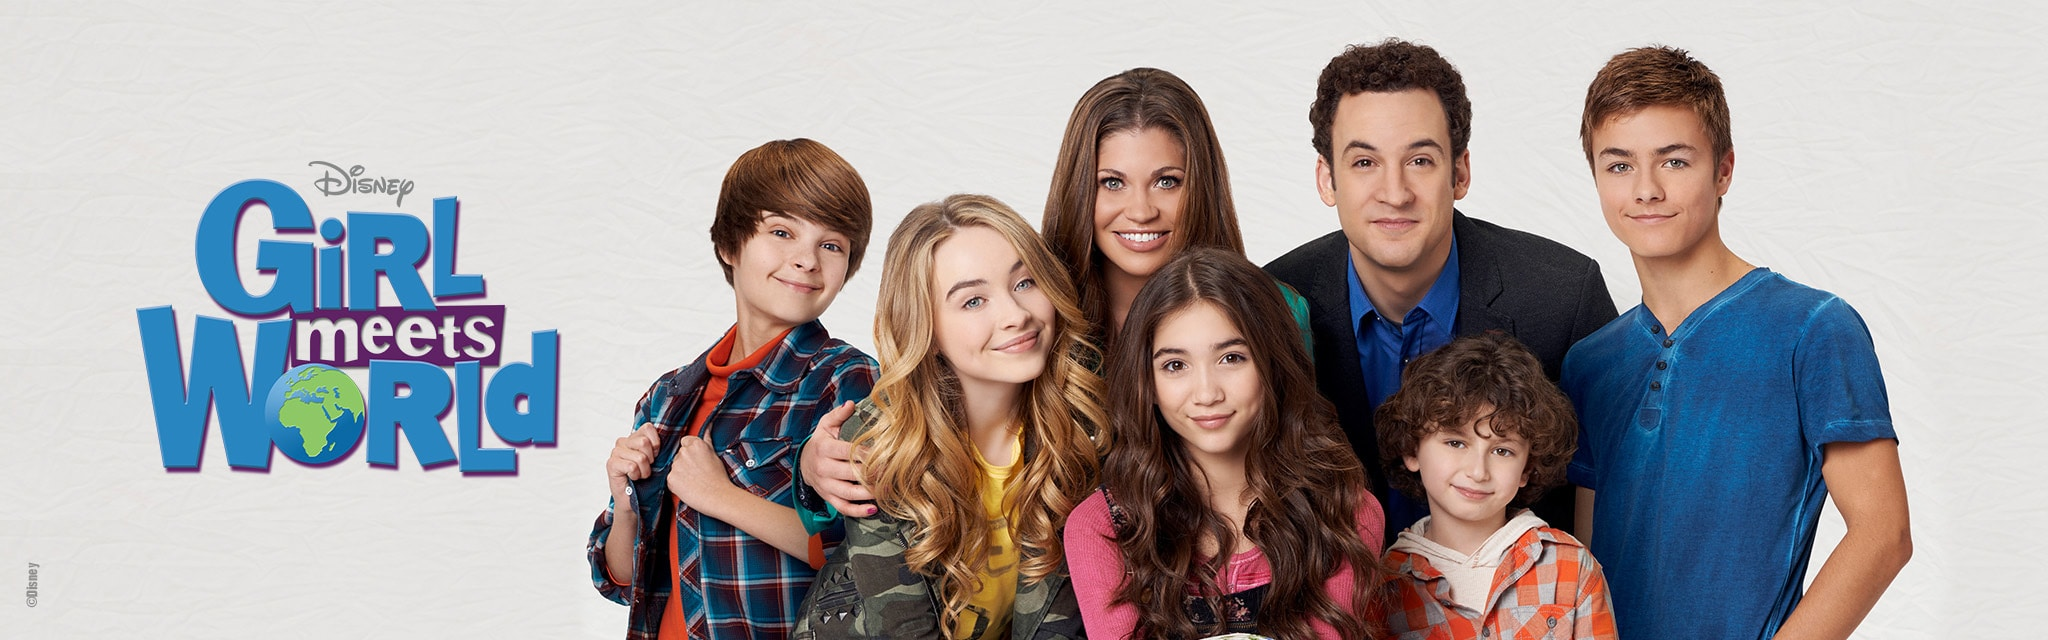 Why did girl meets world get cancelled